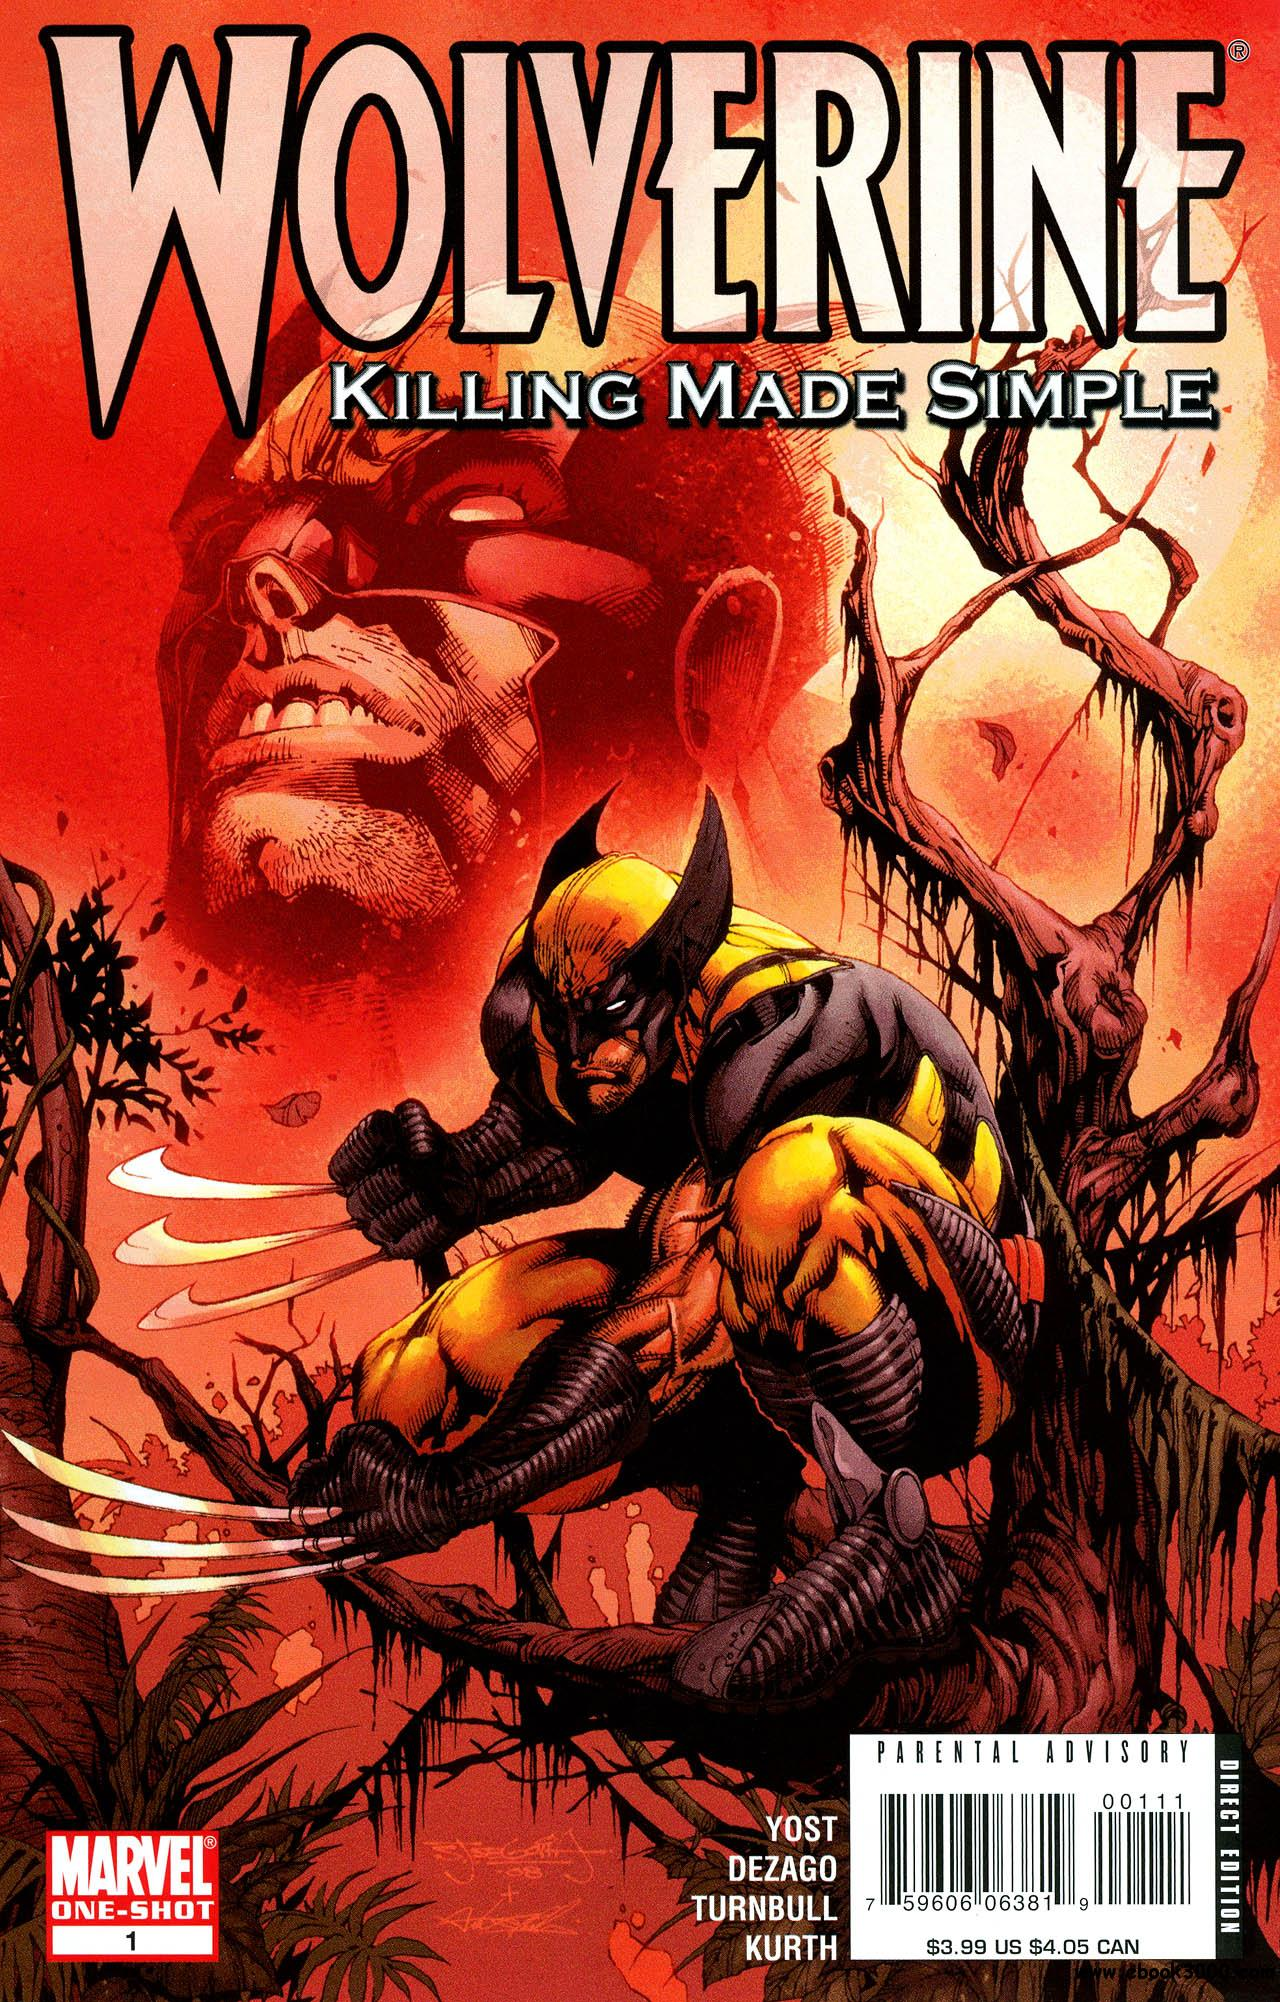 Wolverine - Killing Made Simple (2008) free download